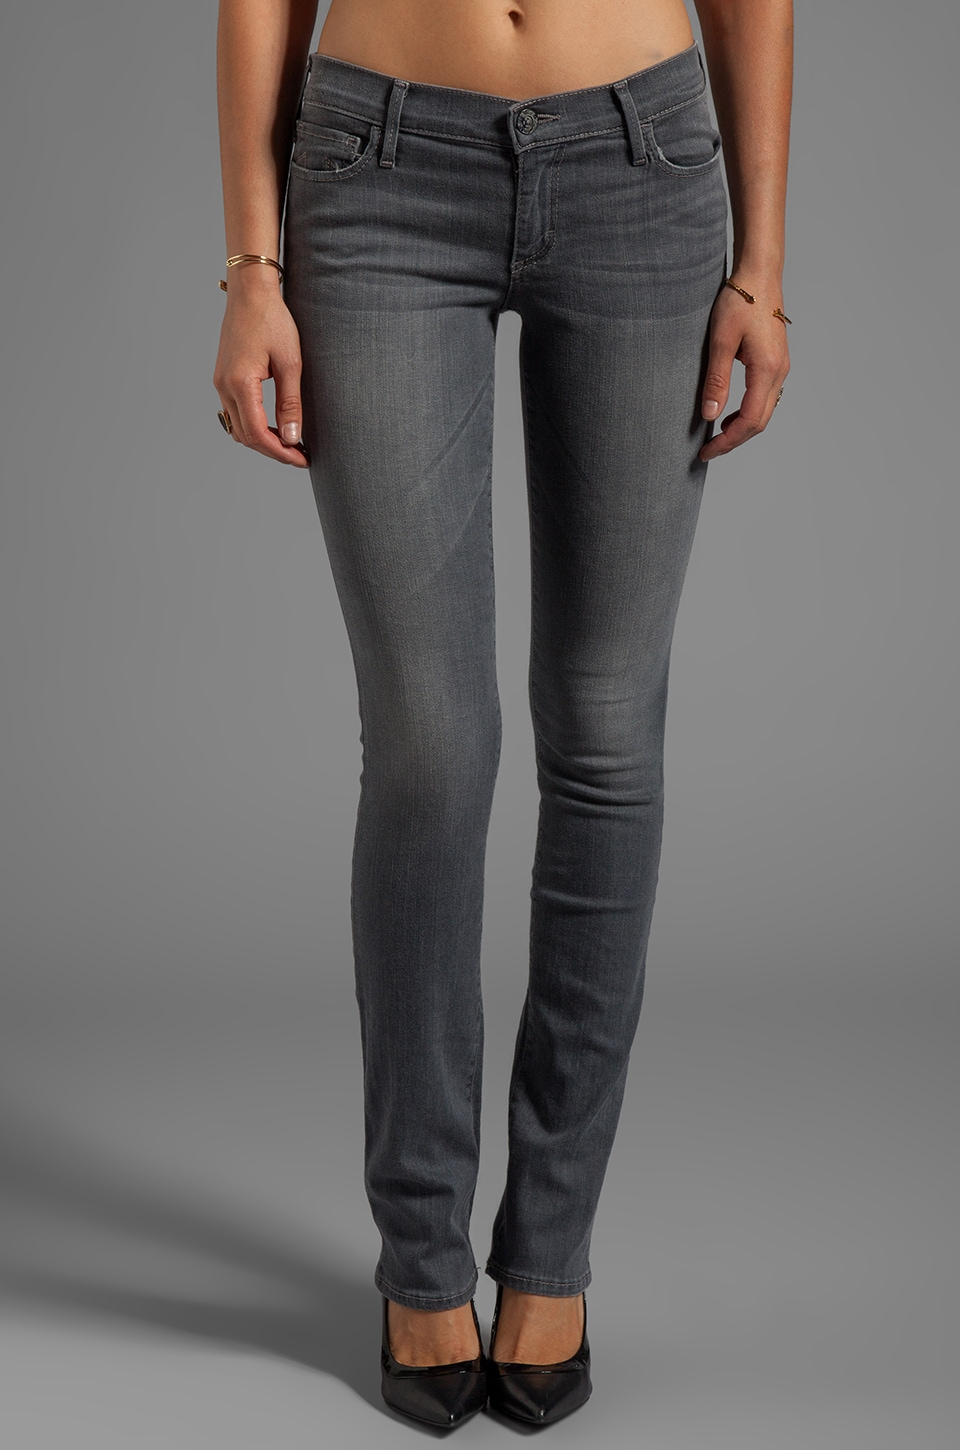 True Religion Cora Mid Rise Skinny in Grey